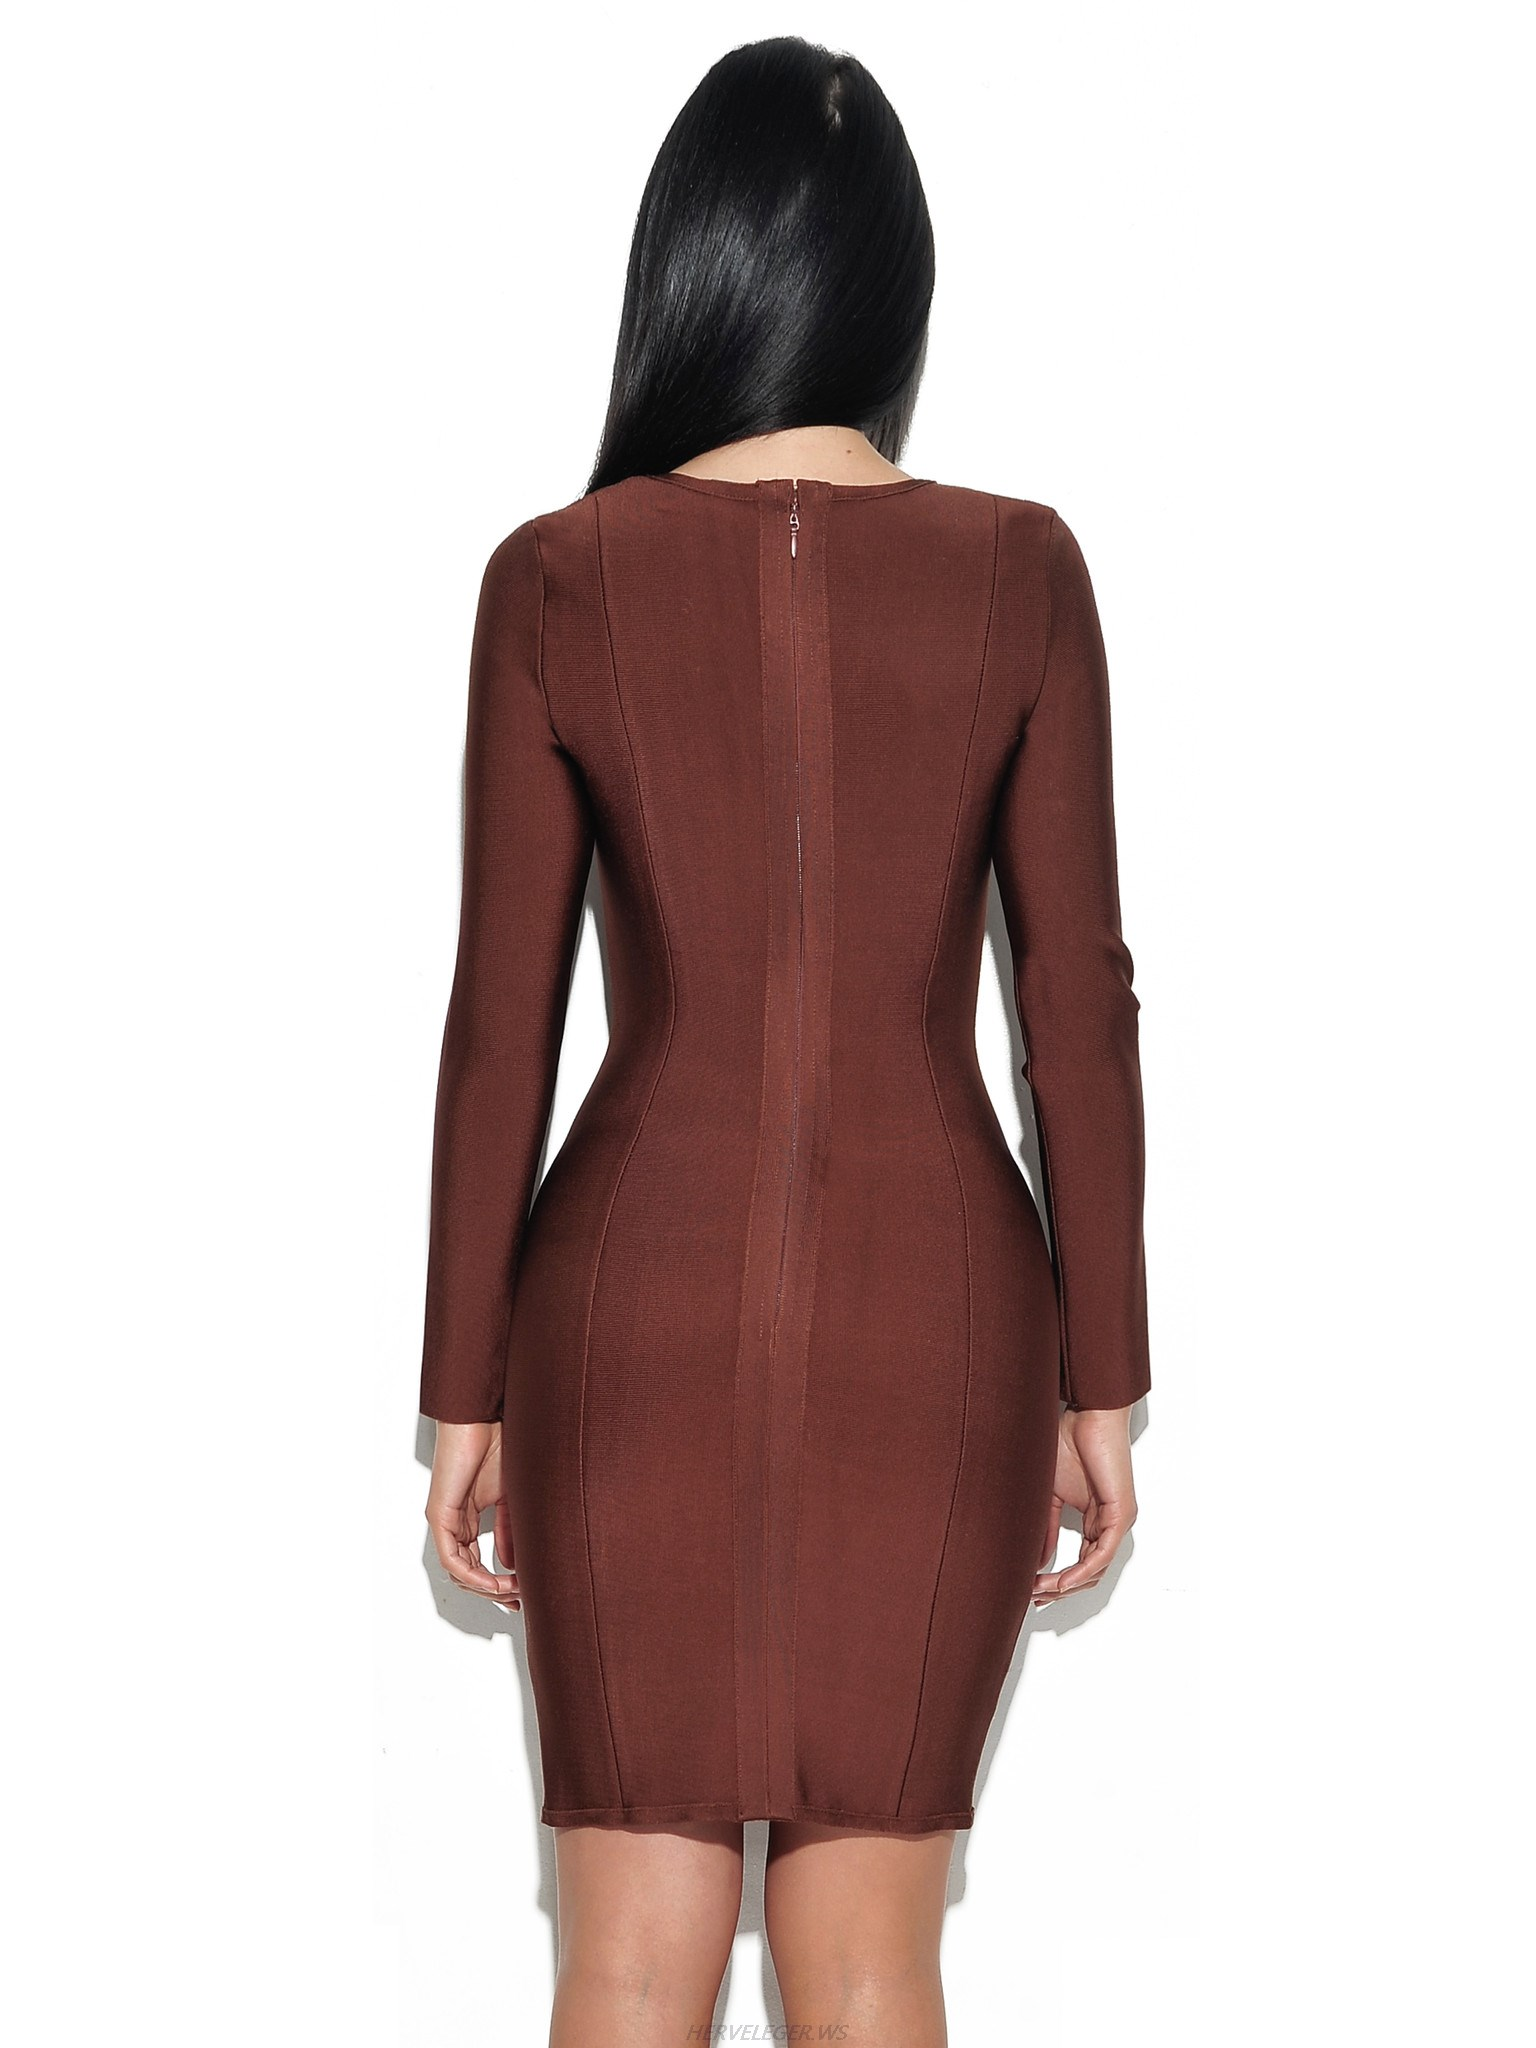 Herve Leger Brown V Neckline Long Sleeve Dress